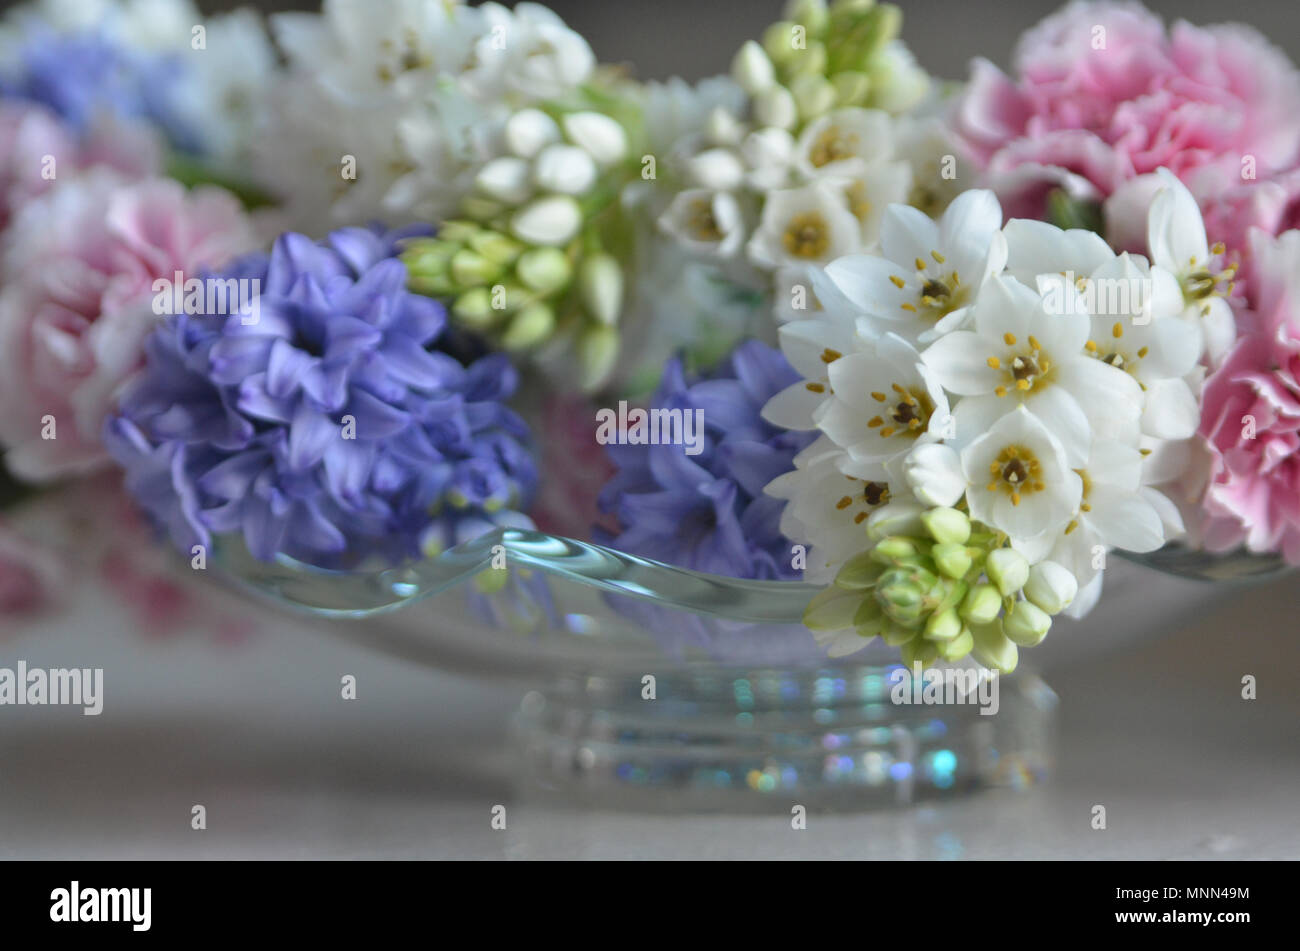 Closeup Of Pink White And Purple Wedding Flowers In A Glass Bowl